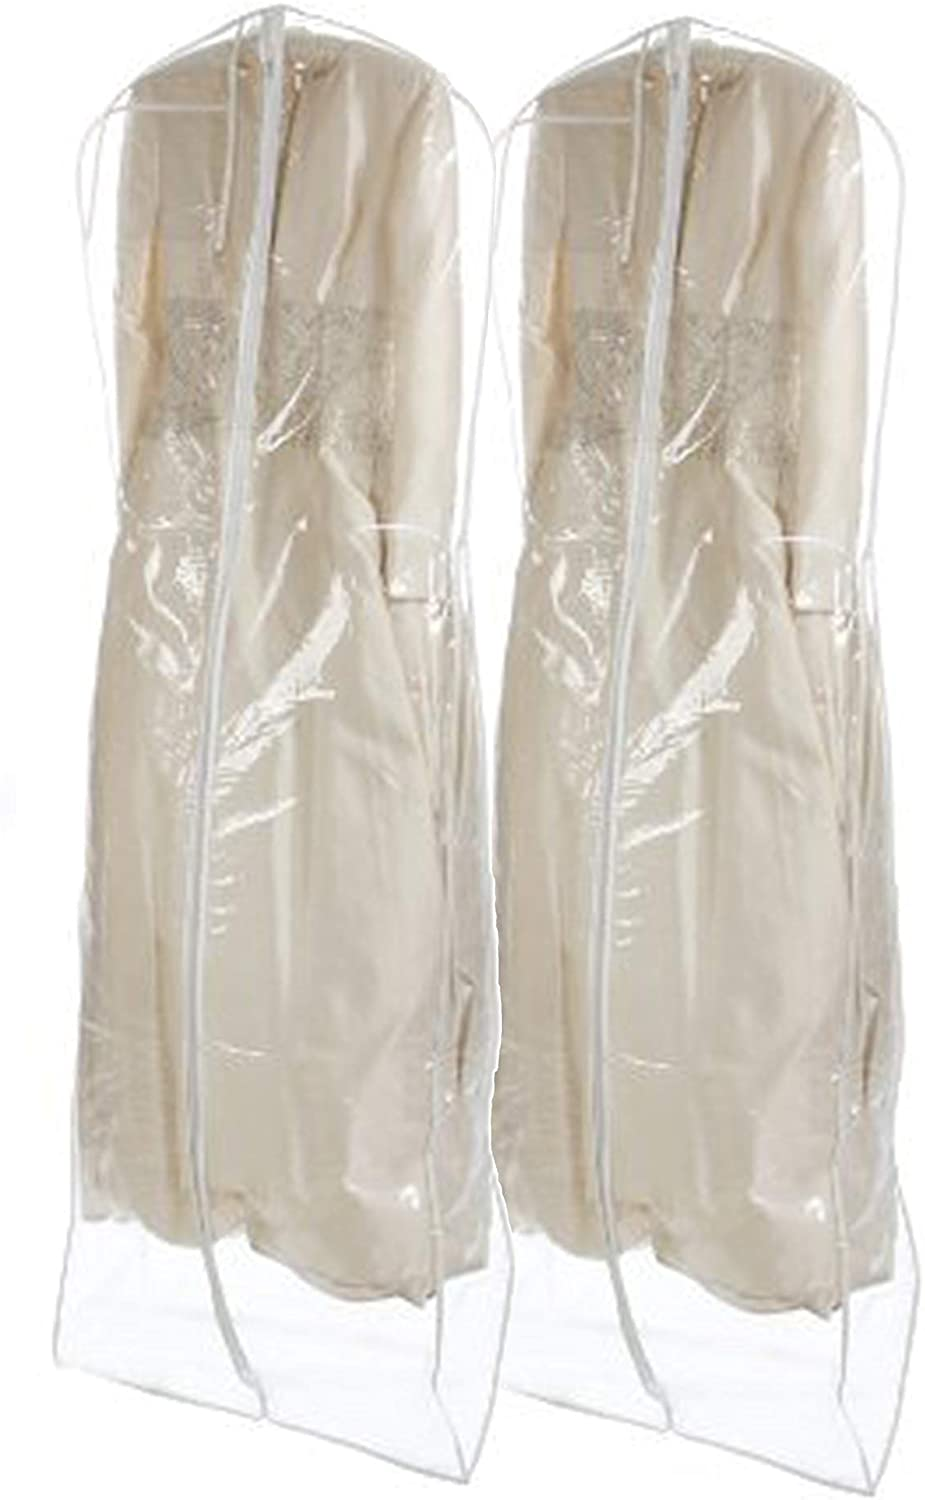 Bags for Less Bridal Wedding Gown Dress Garment Bag, Clear (2 Pack)